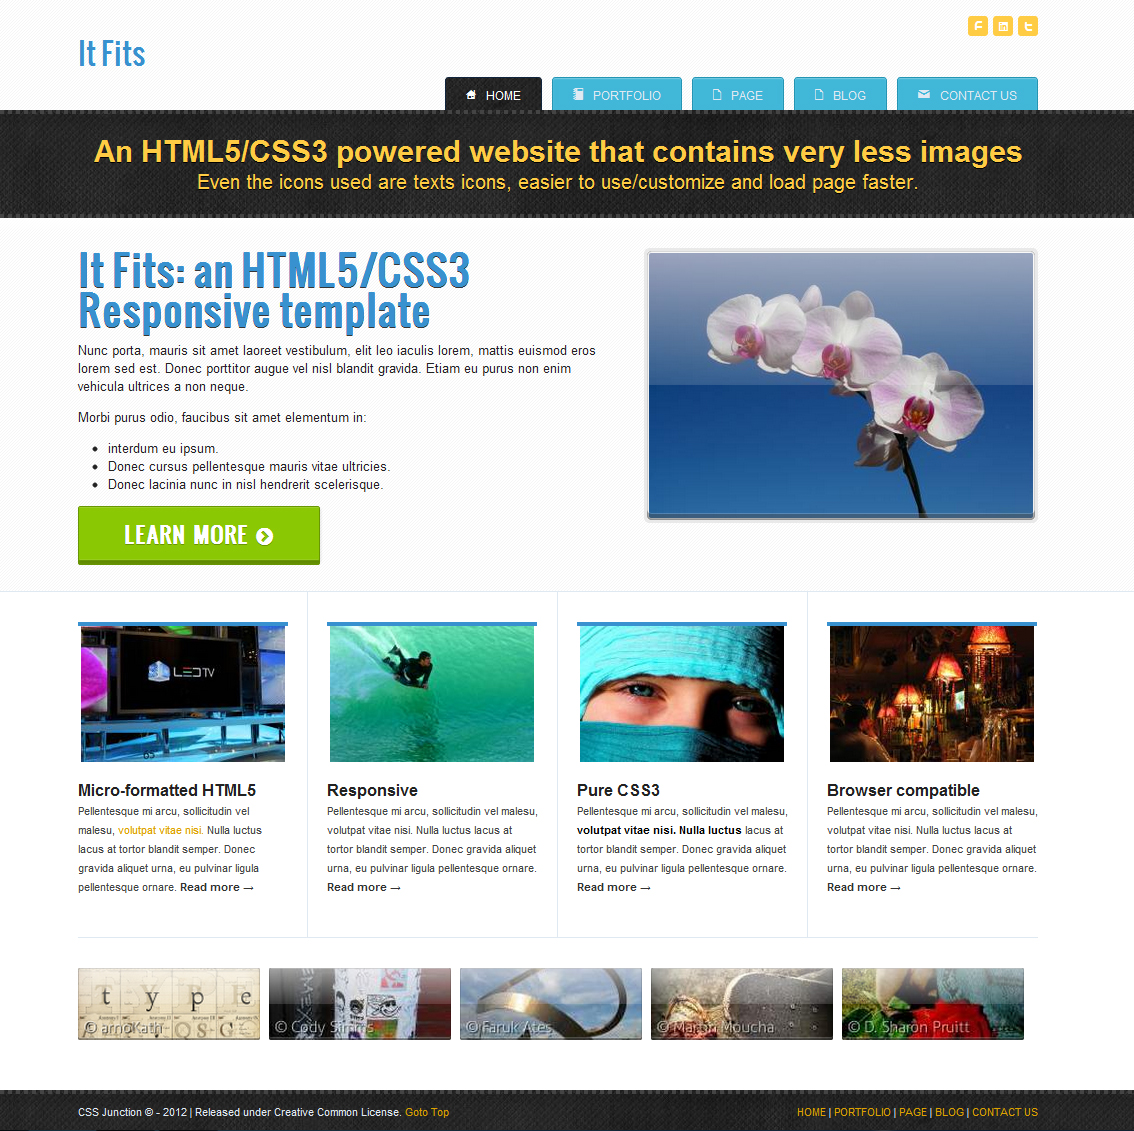 11. It Fits  HTML5 CSS3 Template